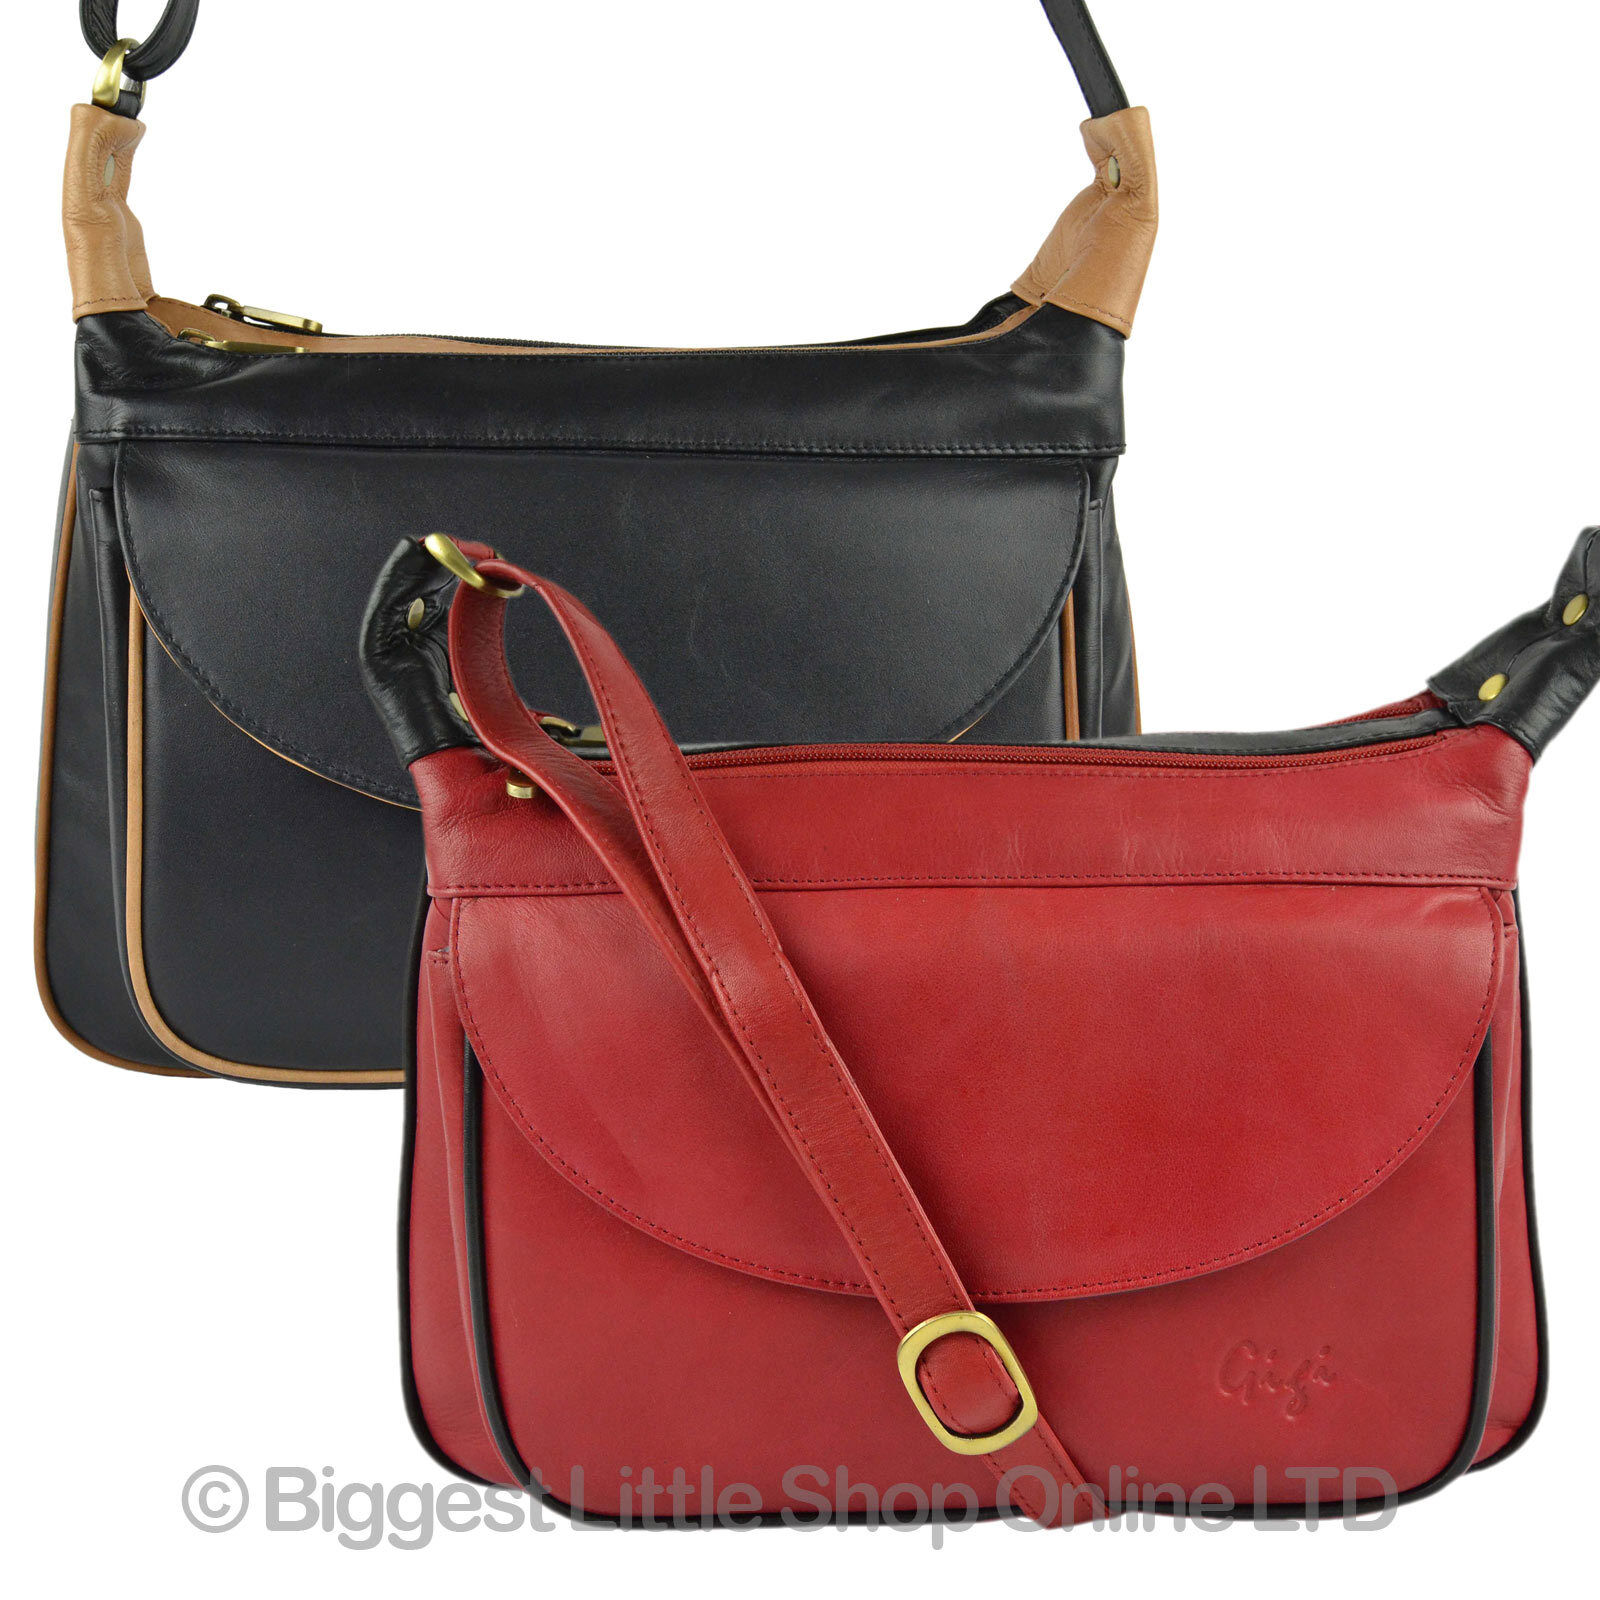 Details about NEW Ladies LEATHER Two-Tone Cross Body BAG by GiGi OTHELLO  Collection Classic c725beeefe17e